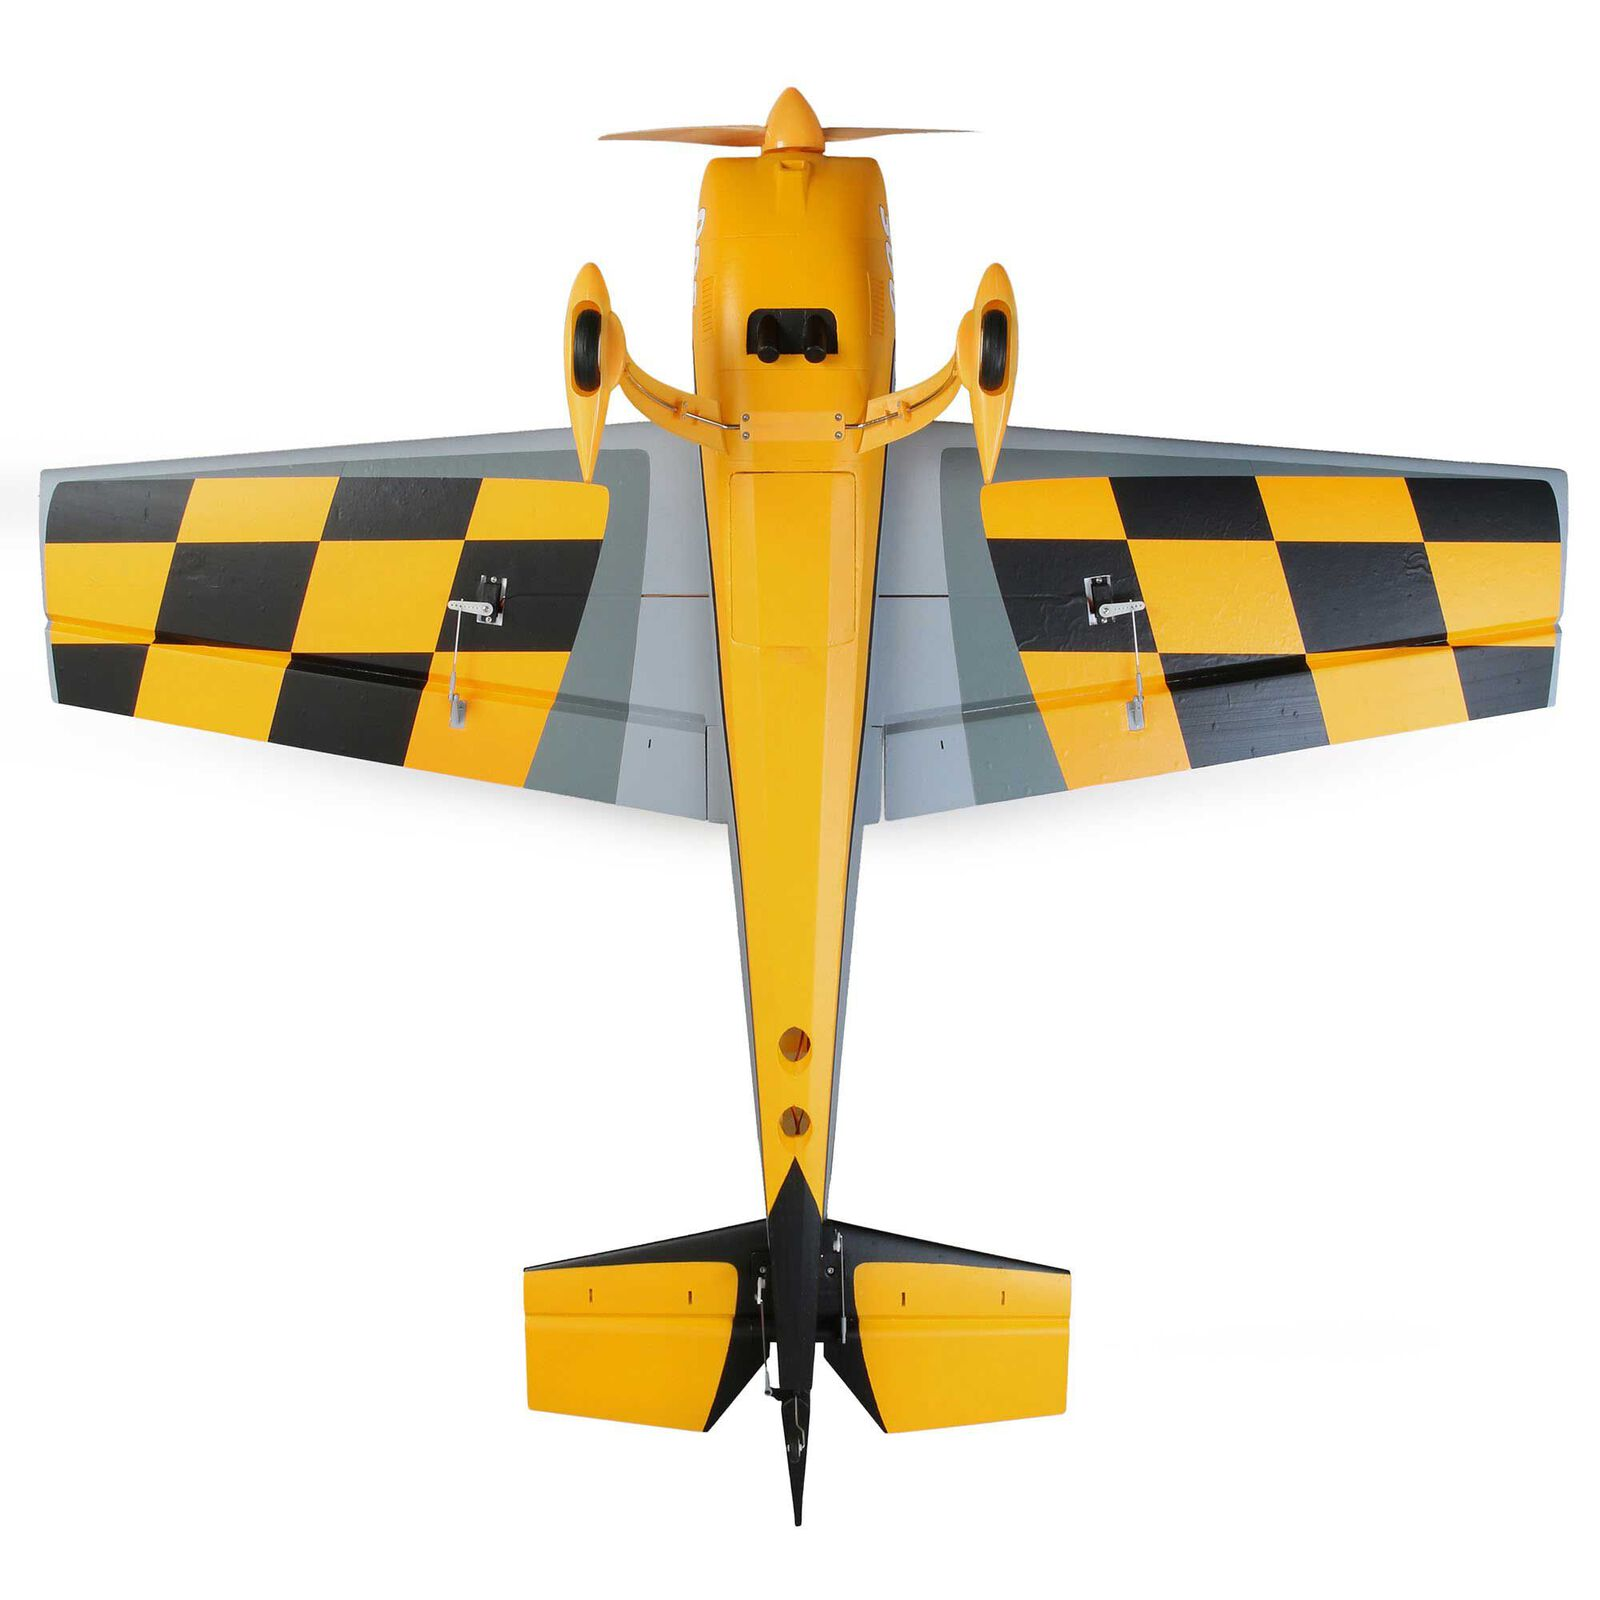 Extra 300 1.3m BNF Basic with AS3X and SAFE Select